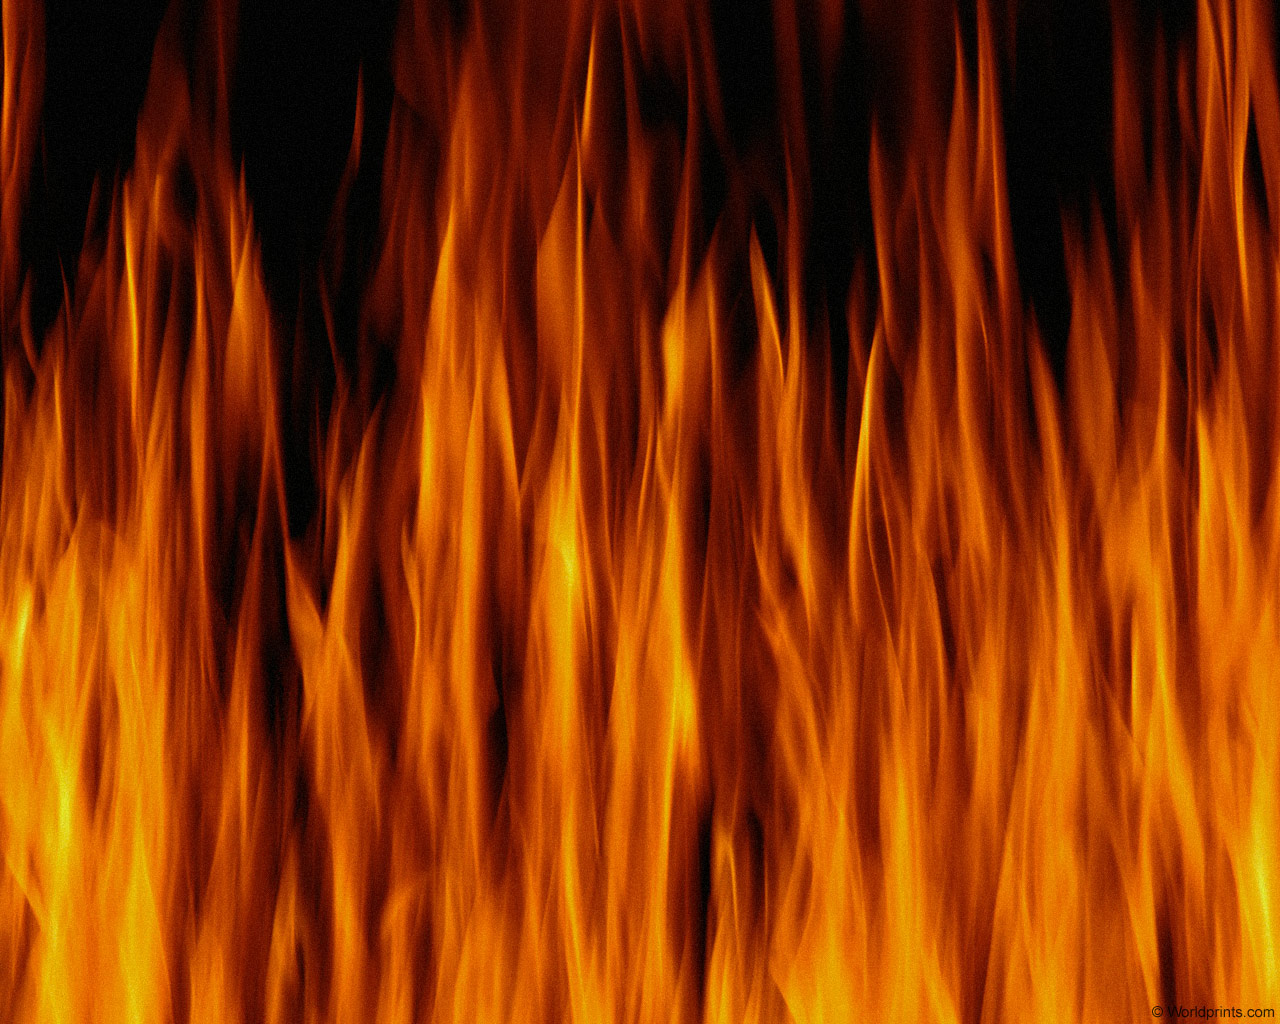 Fire texture clipart vector transparent download Fire Flames Photos Textures Gallery | by ATextures.com - Clip Art ... vector transparent download